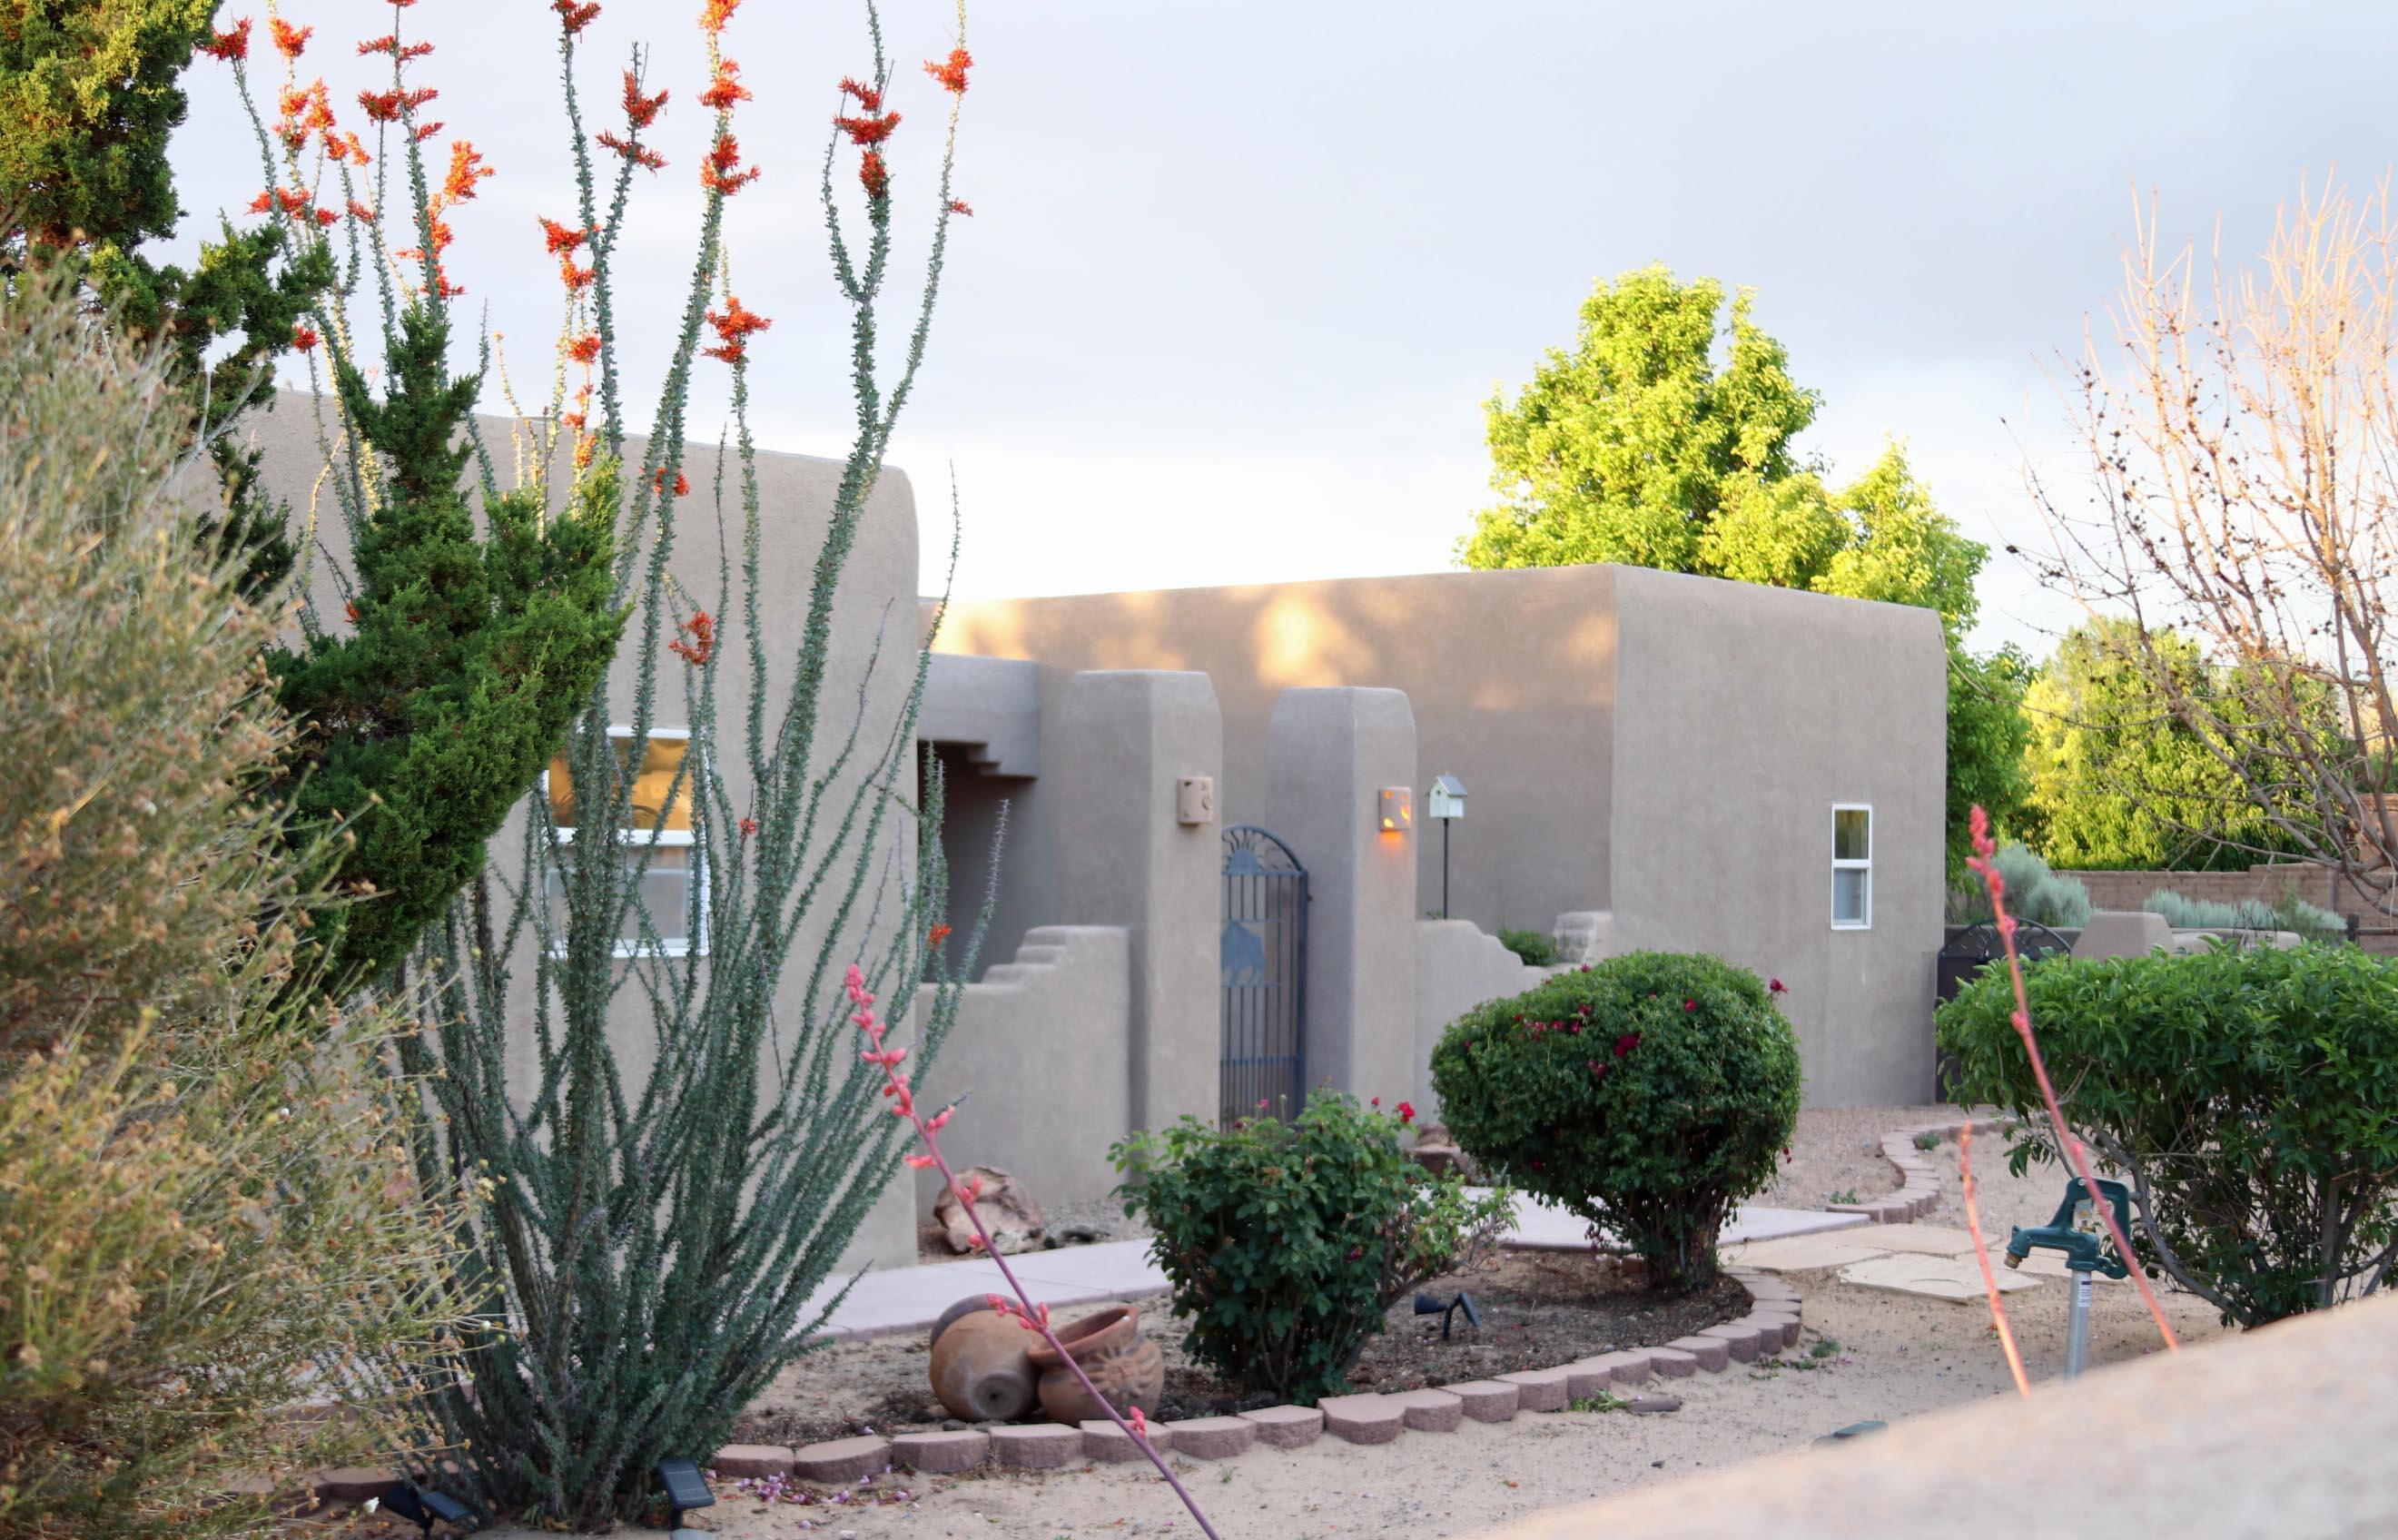 Stunning Corrales Beauty welcomes you w/ a courtyard entrance! Gracious living room w/ vaulted ceilings, vigas, tongue & groove ceilings & corbels. You'll love the cozy Kiva fireplace for those cold winter nights. Chef's delight kitchen w/ granite counter tops, plenty of cupboard space & breakfast bar. Stainless appliances, include a drop-in gas cooktop & Bosch dishwasher. Wonderful multi-gen floor plan. Master is separate from other bedrooms & there's  a possible In-law suite too! Updated radiant heat; 2 new heat/cool refrigerated ACs, new 50-gal HWH. Amazing new NE covered patio, complete w/ a kiva fireplace w/ fantastic mountain & city light views! Detached art studio/office/workshop not included in sq. ft.. New irrigation system. Plenty of parking for your RV. It's beautiful!